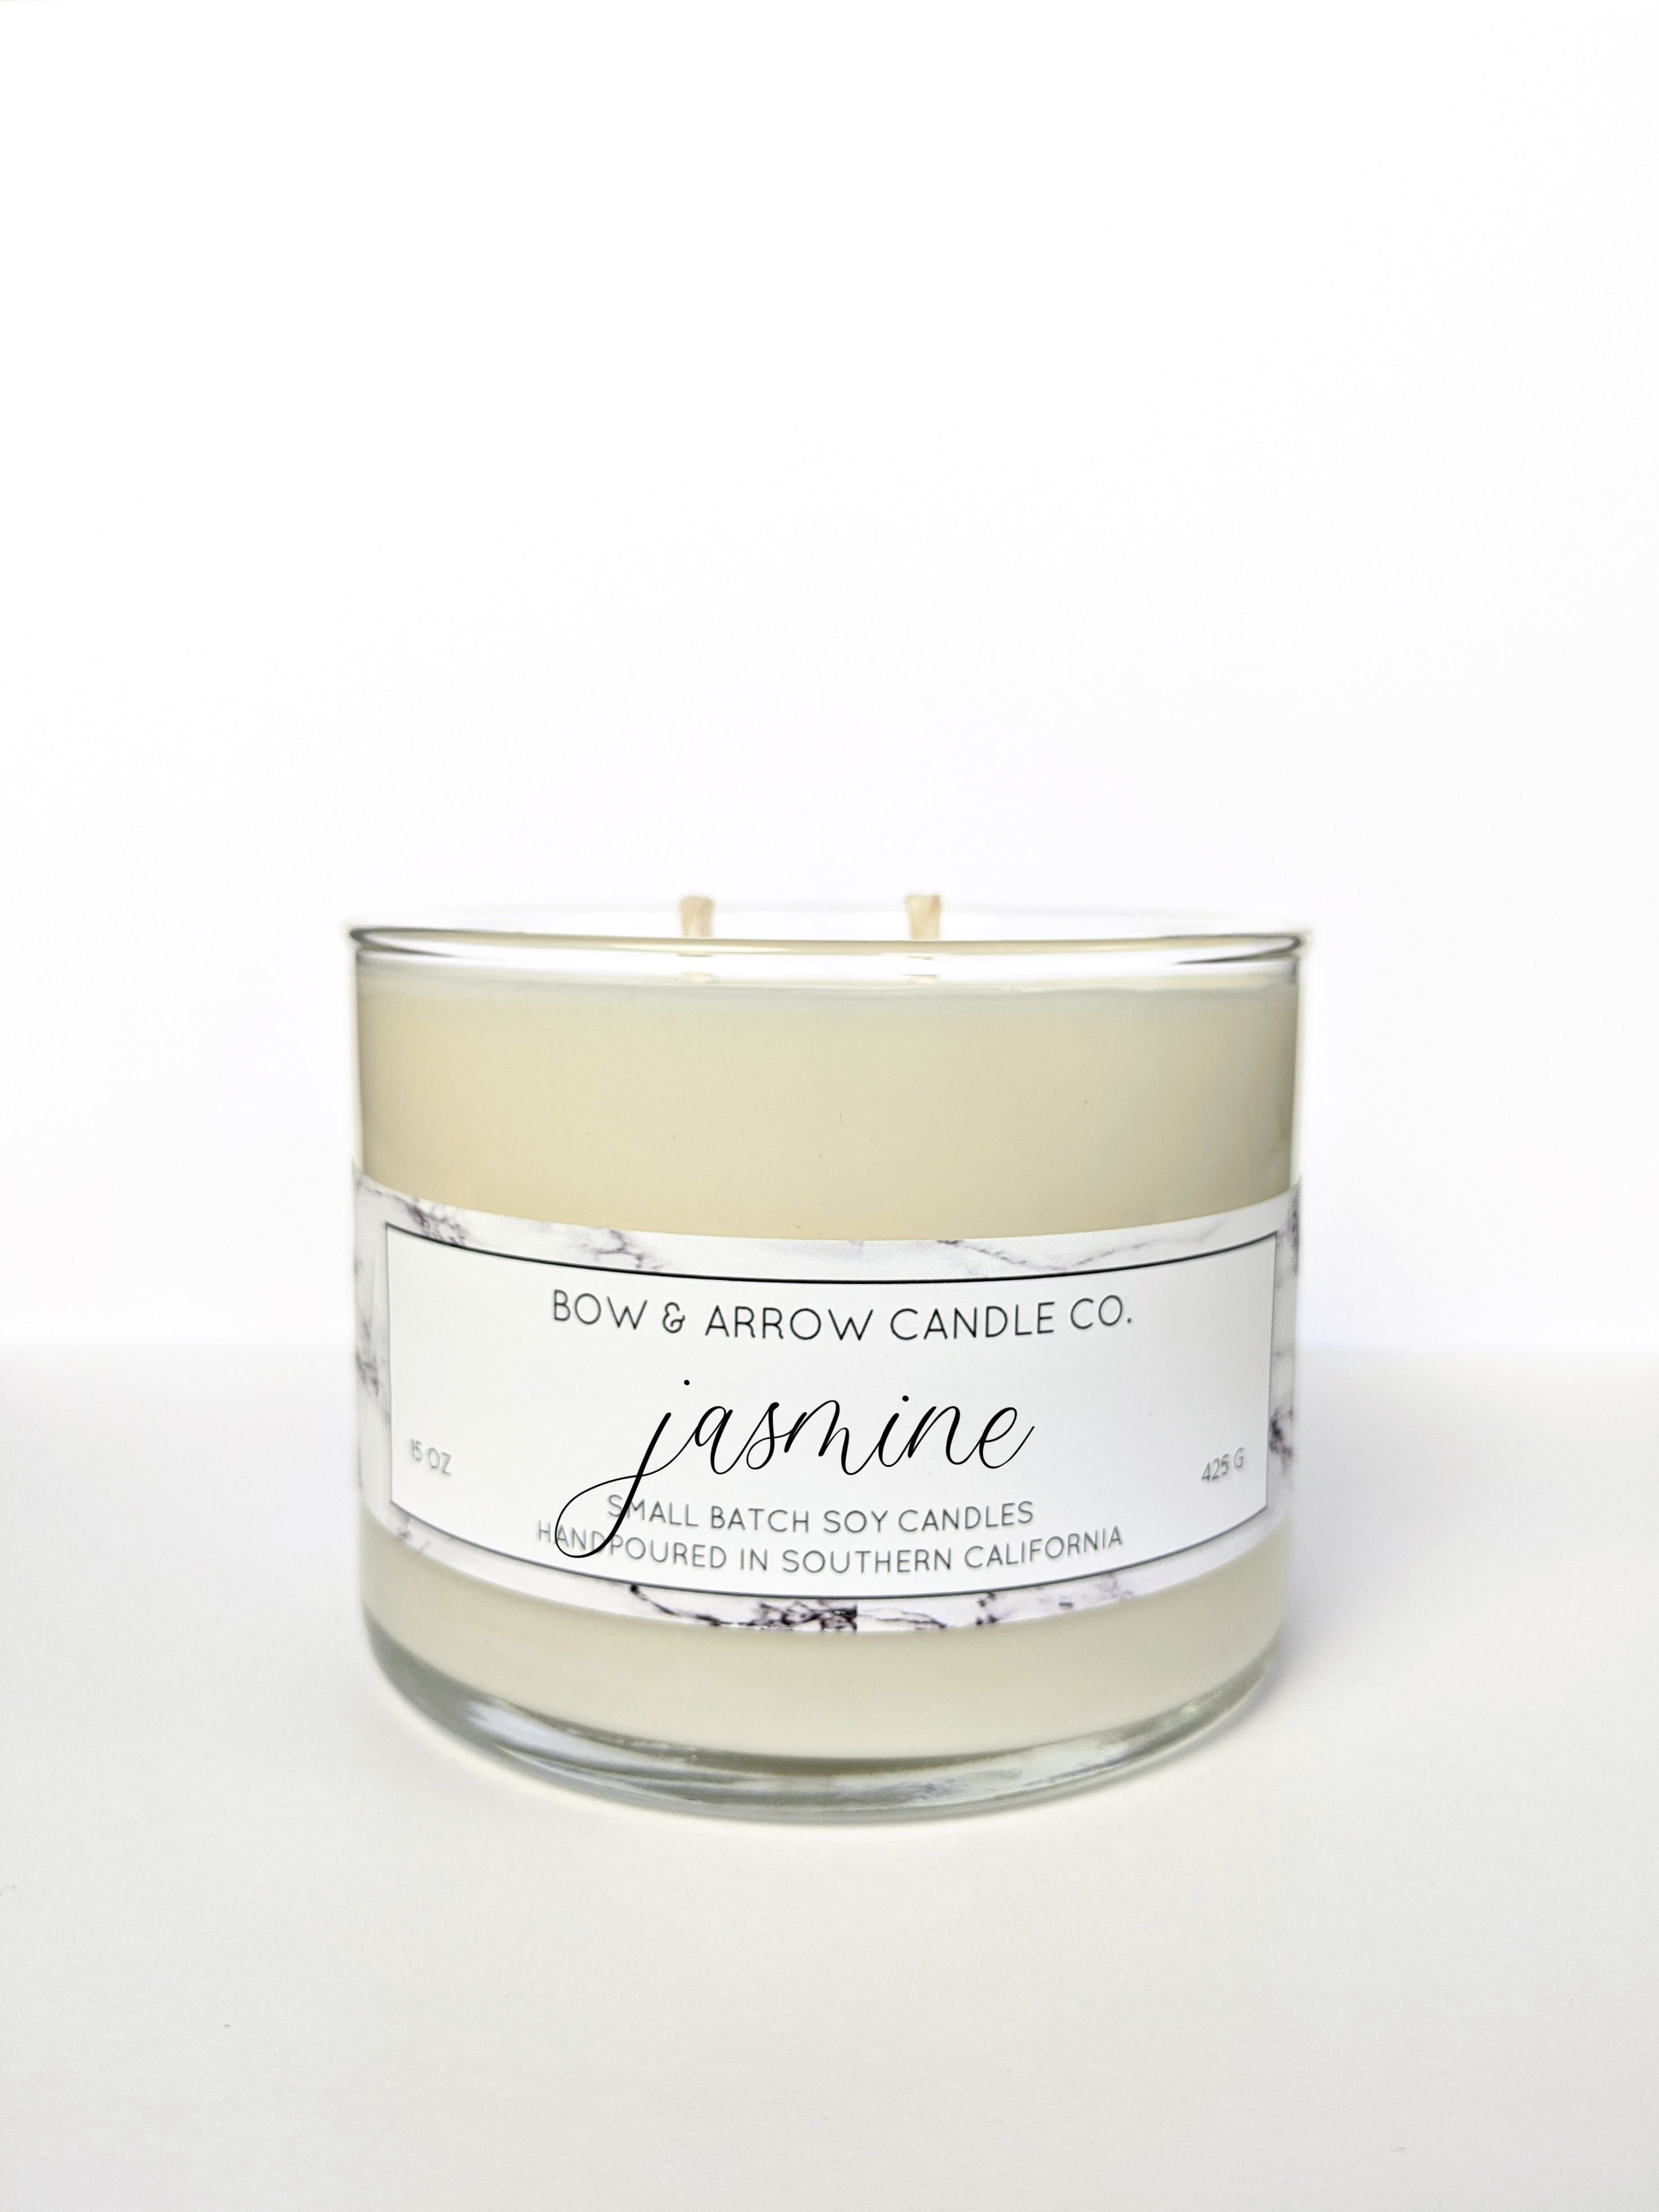 Jasmine Scented 15 oz Soy Candle